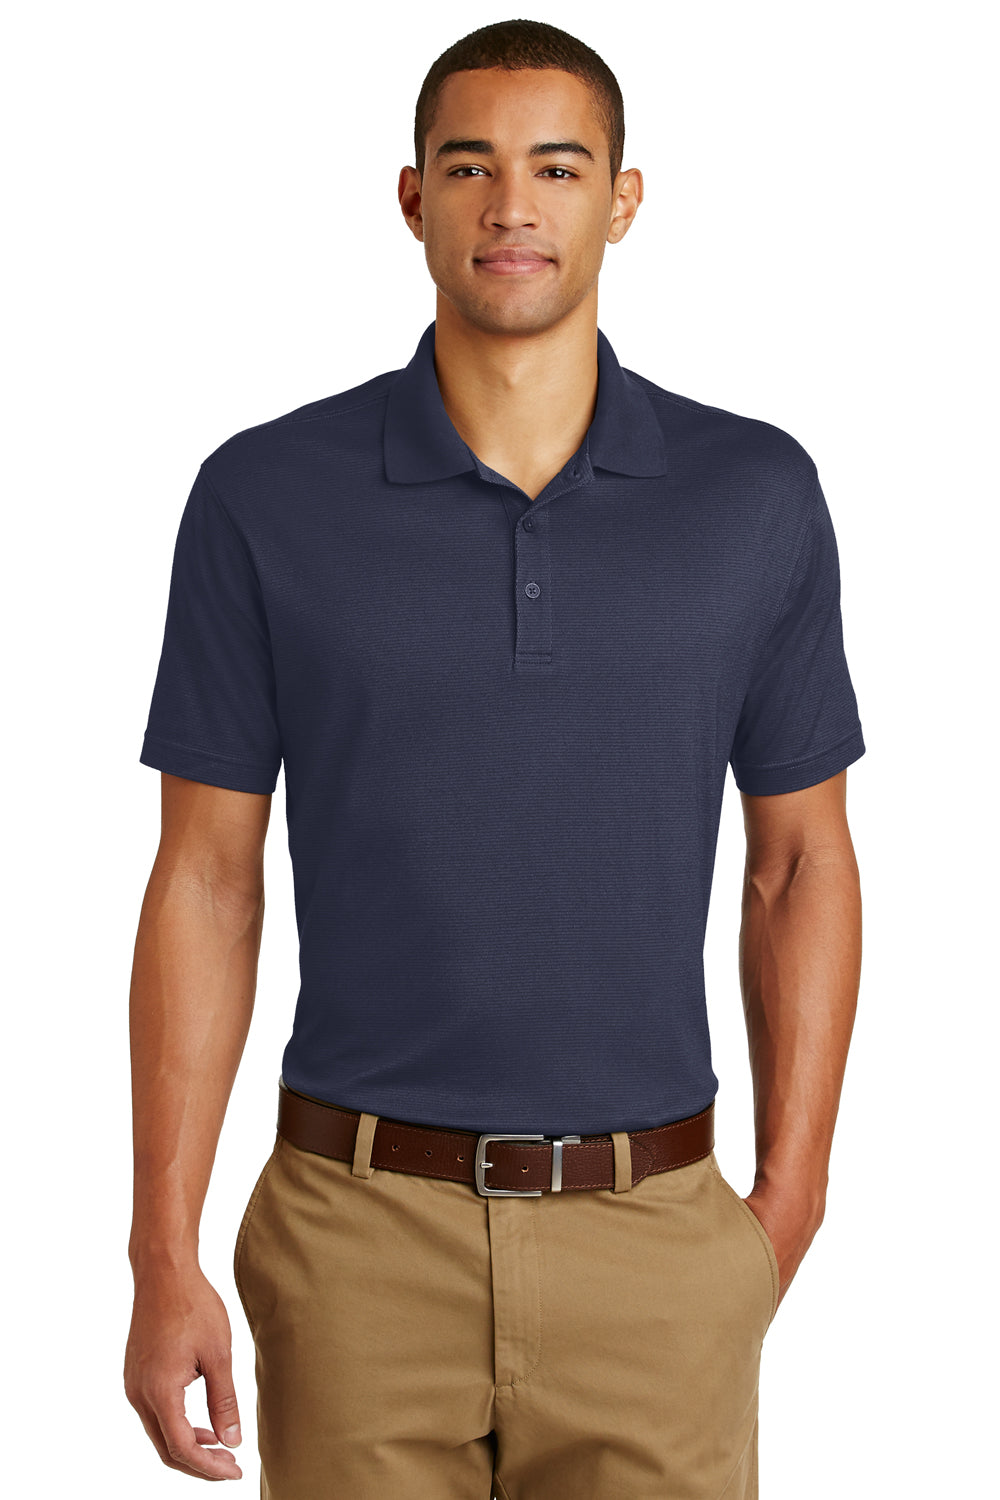 Eddie Bauer EB102 Mens UPF 30+ Performance Short Sleeve Polo Shirt Navy Blue Front